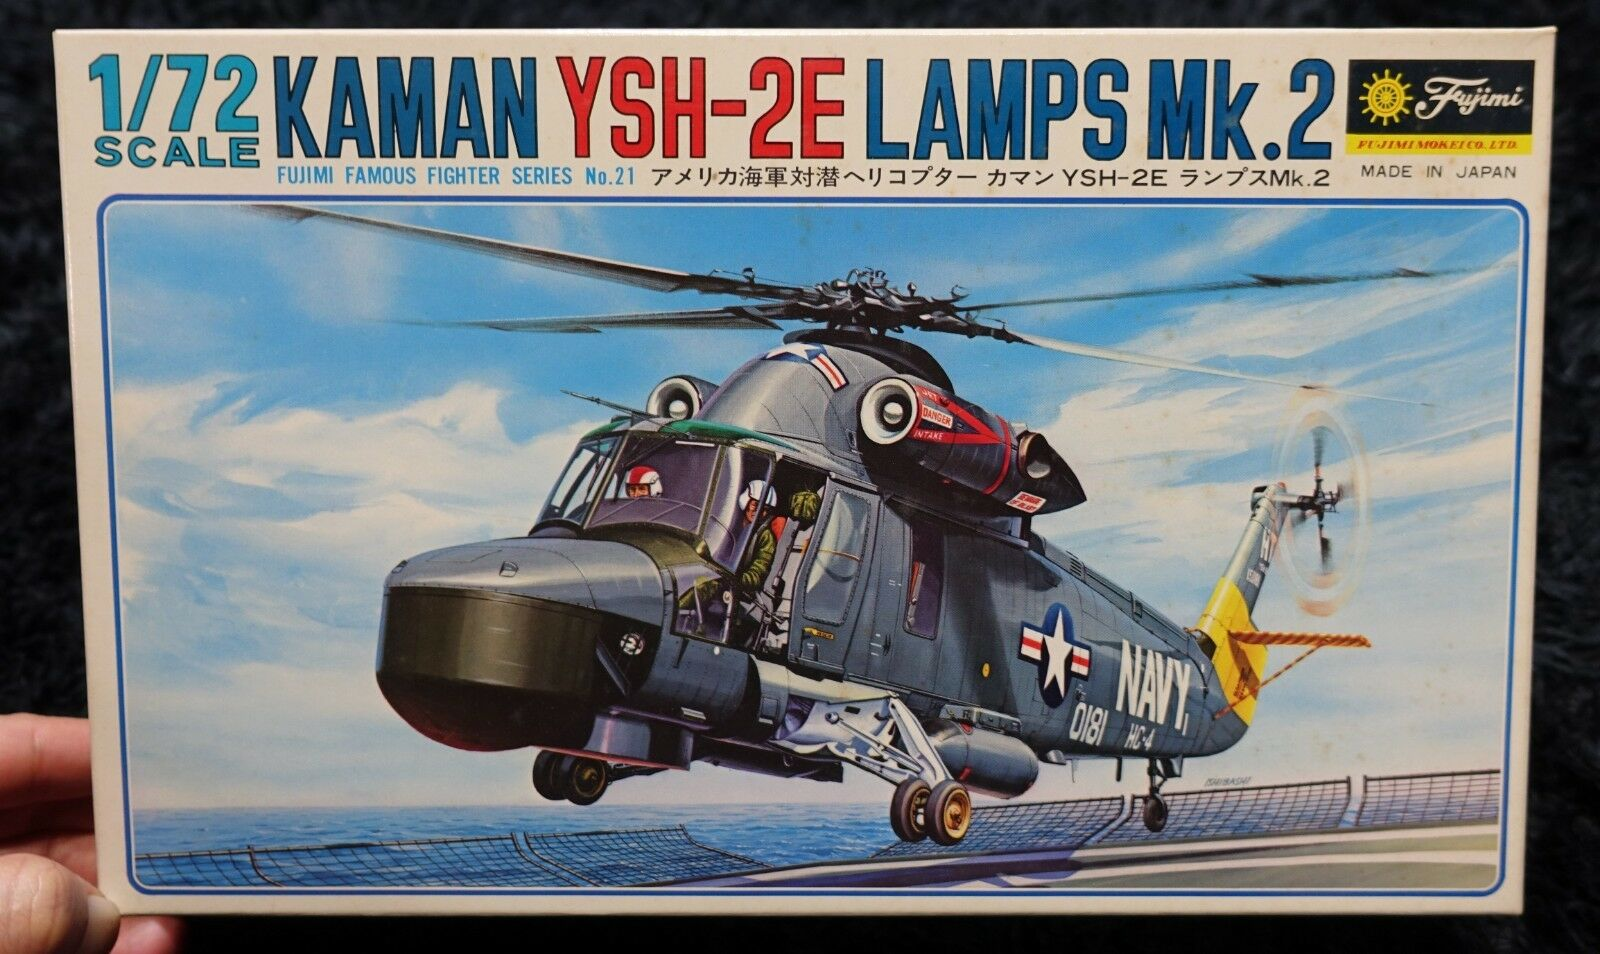 KAMAN YSH-2E LAMPS Mk2  1 72 FUJIMI MODEL KIT Helicopters Helicopter